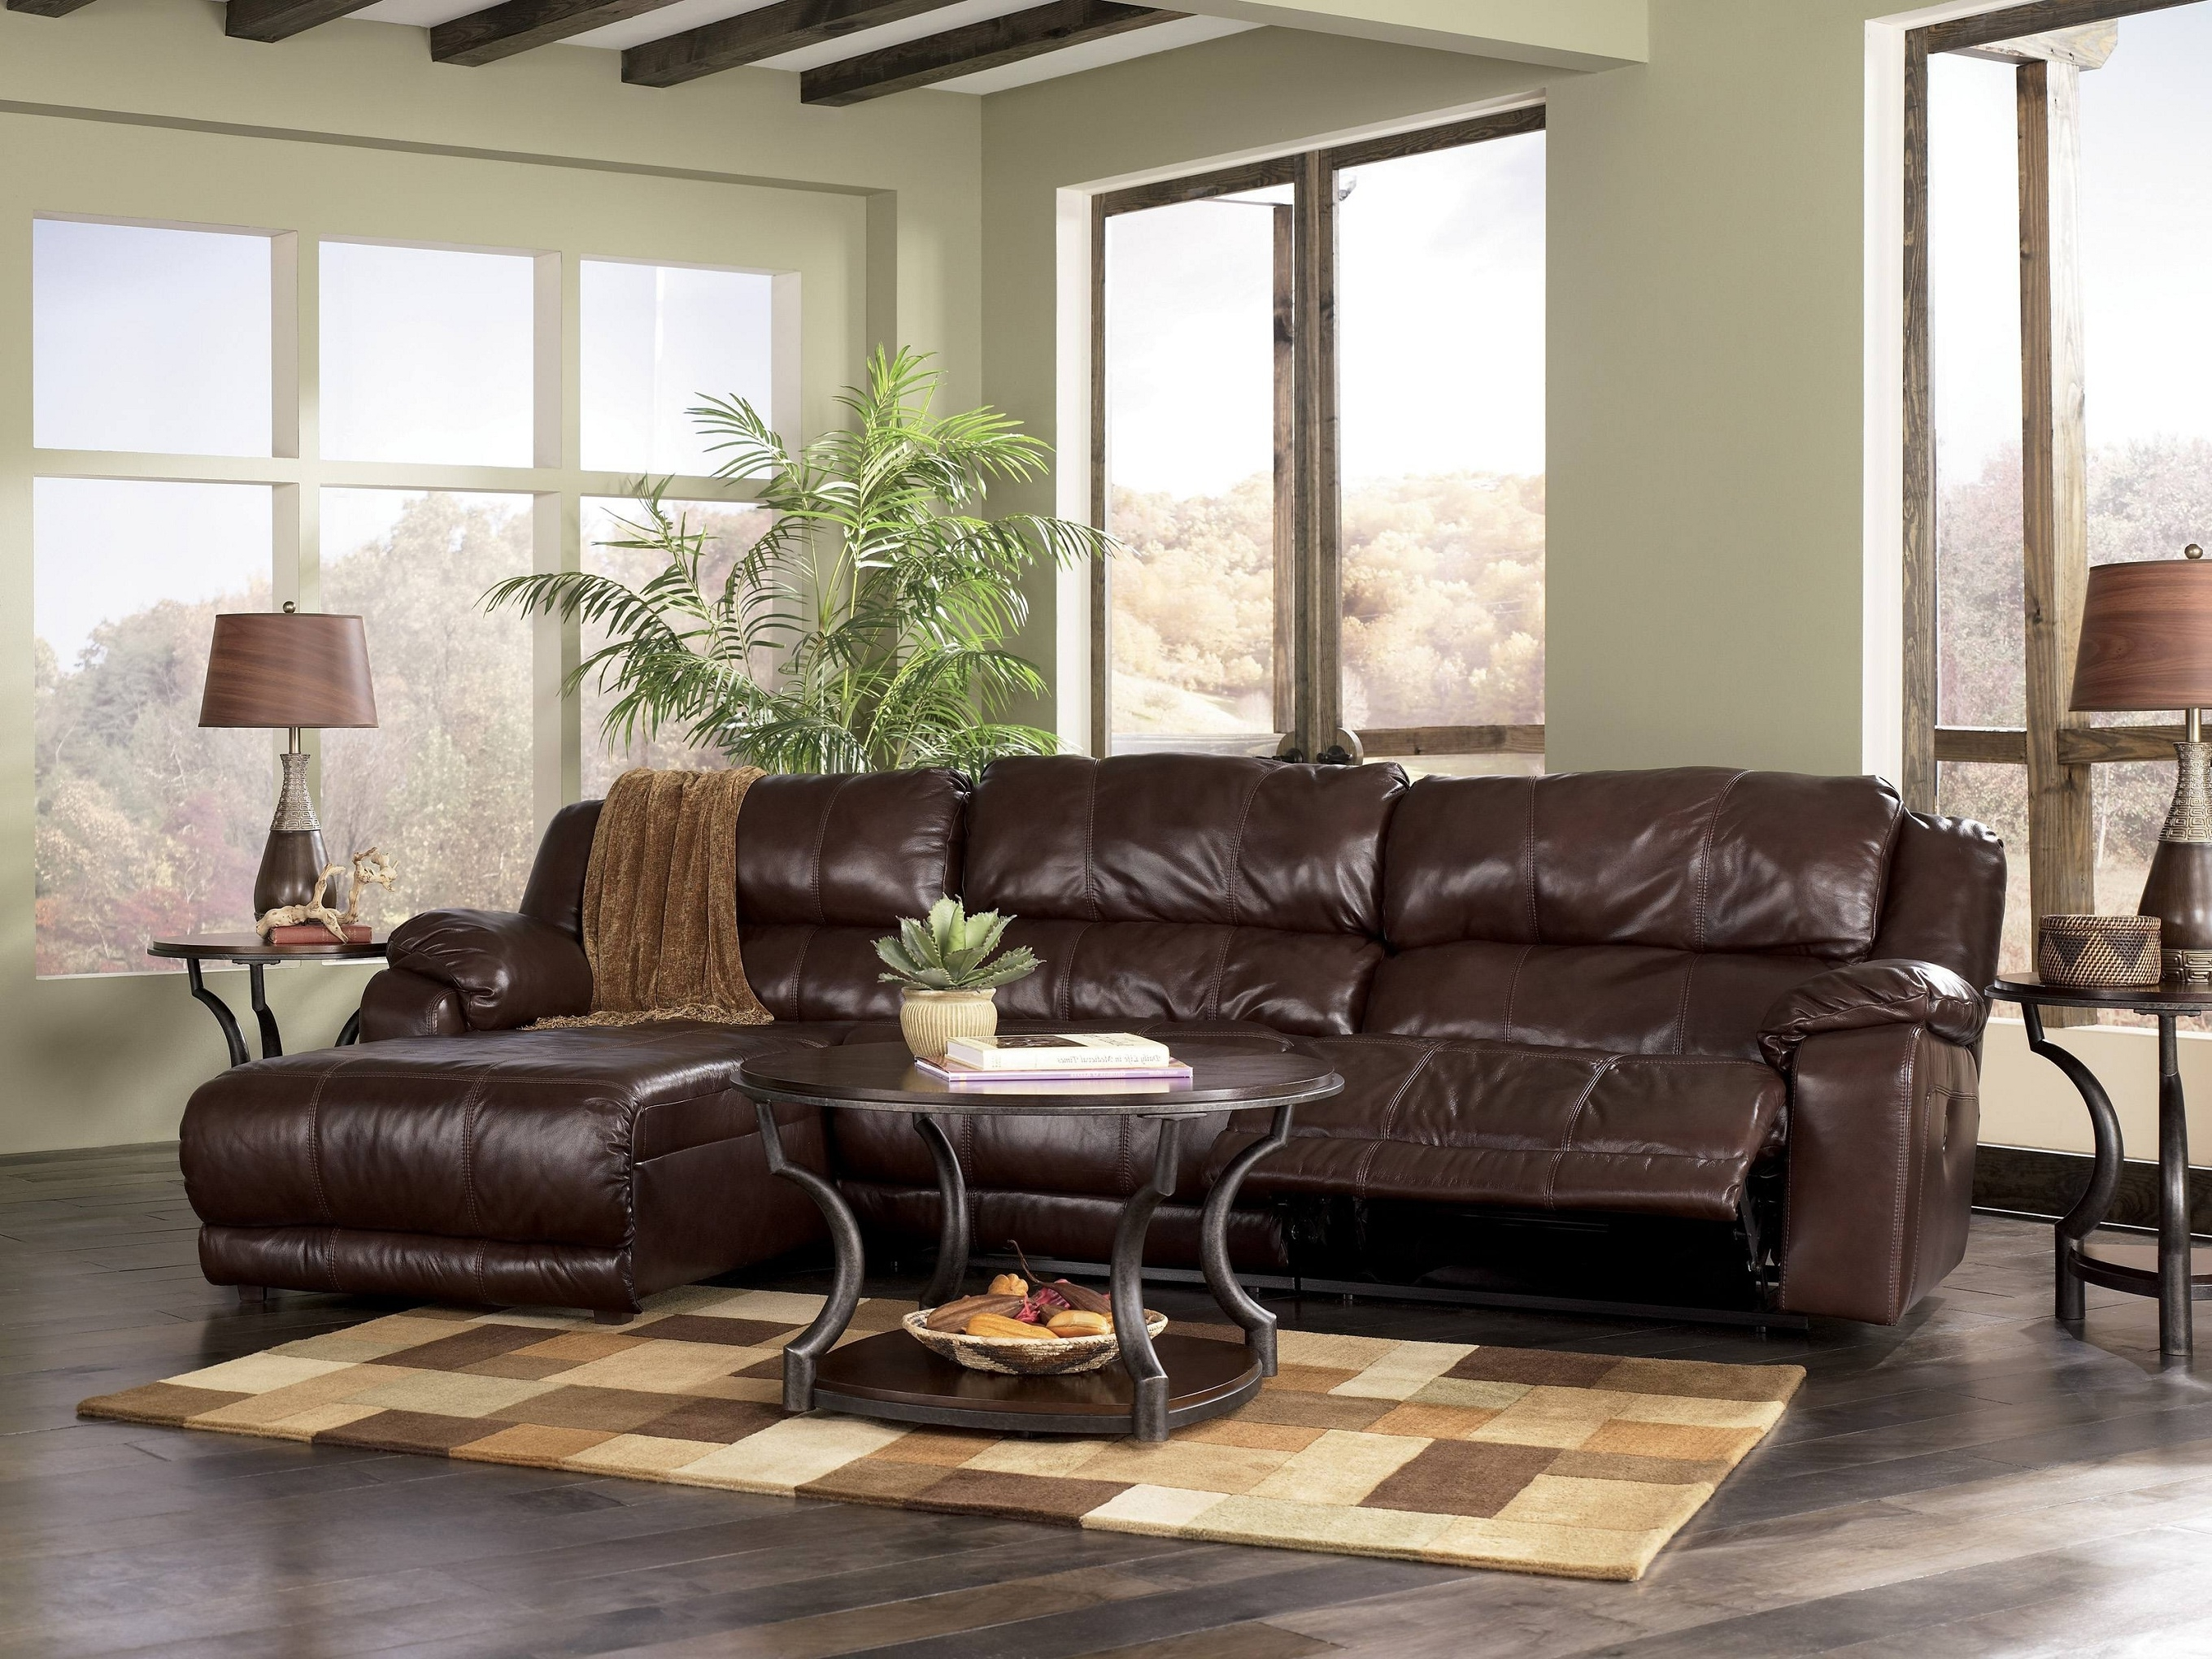 2019 Brown Living Room Table Lamps Within Dark Brown Leather Sofa And Brown Rug On The Floor Connectedtwin (View 1 of 20)